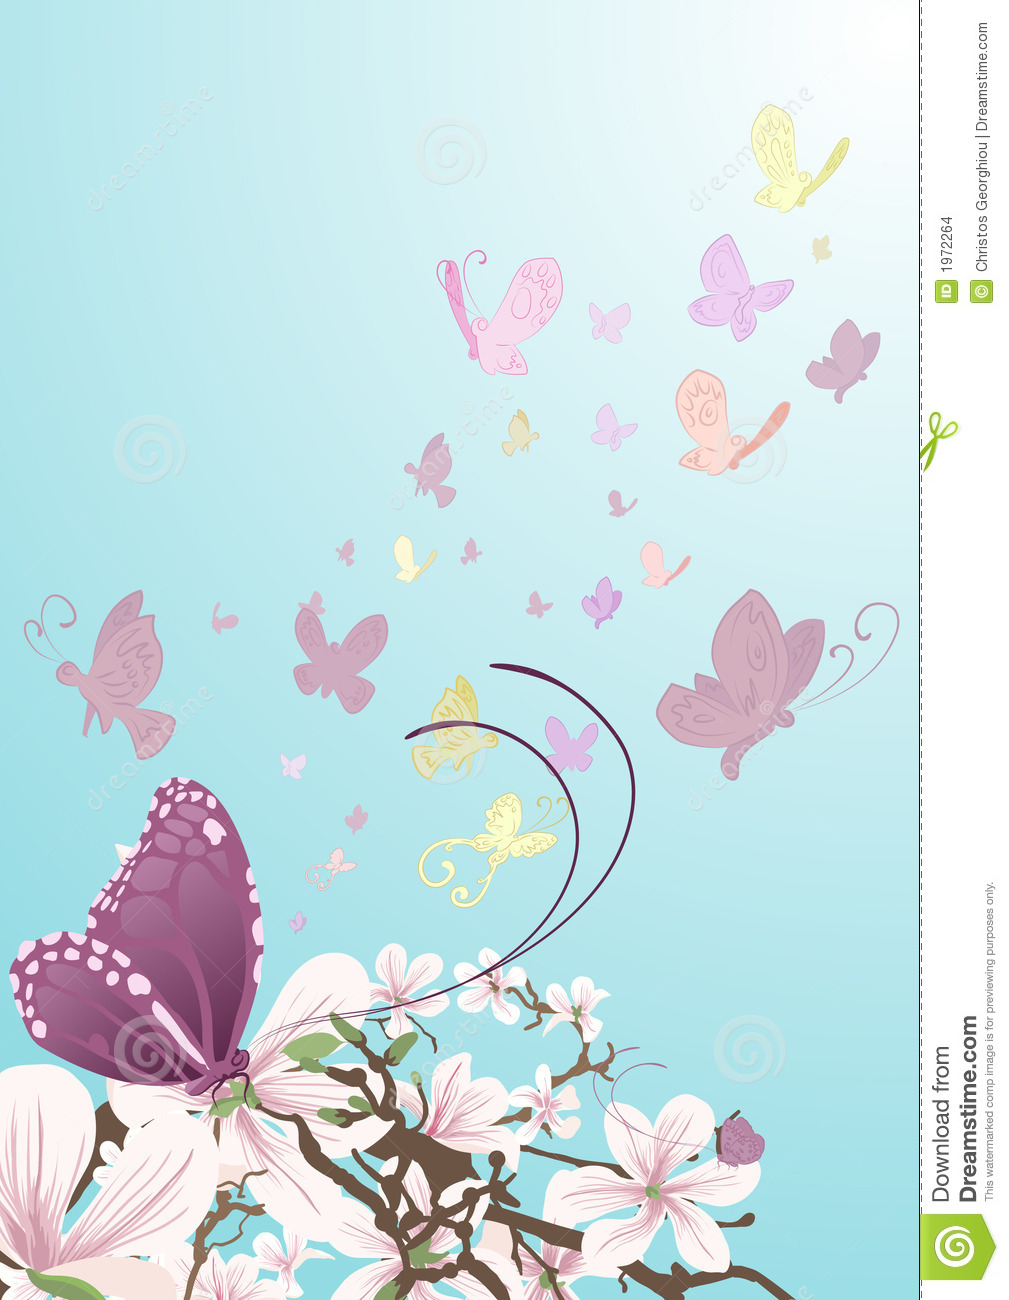 Butterflies and beautiful flowers